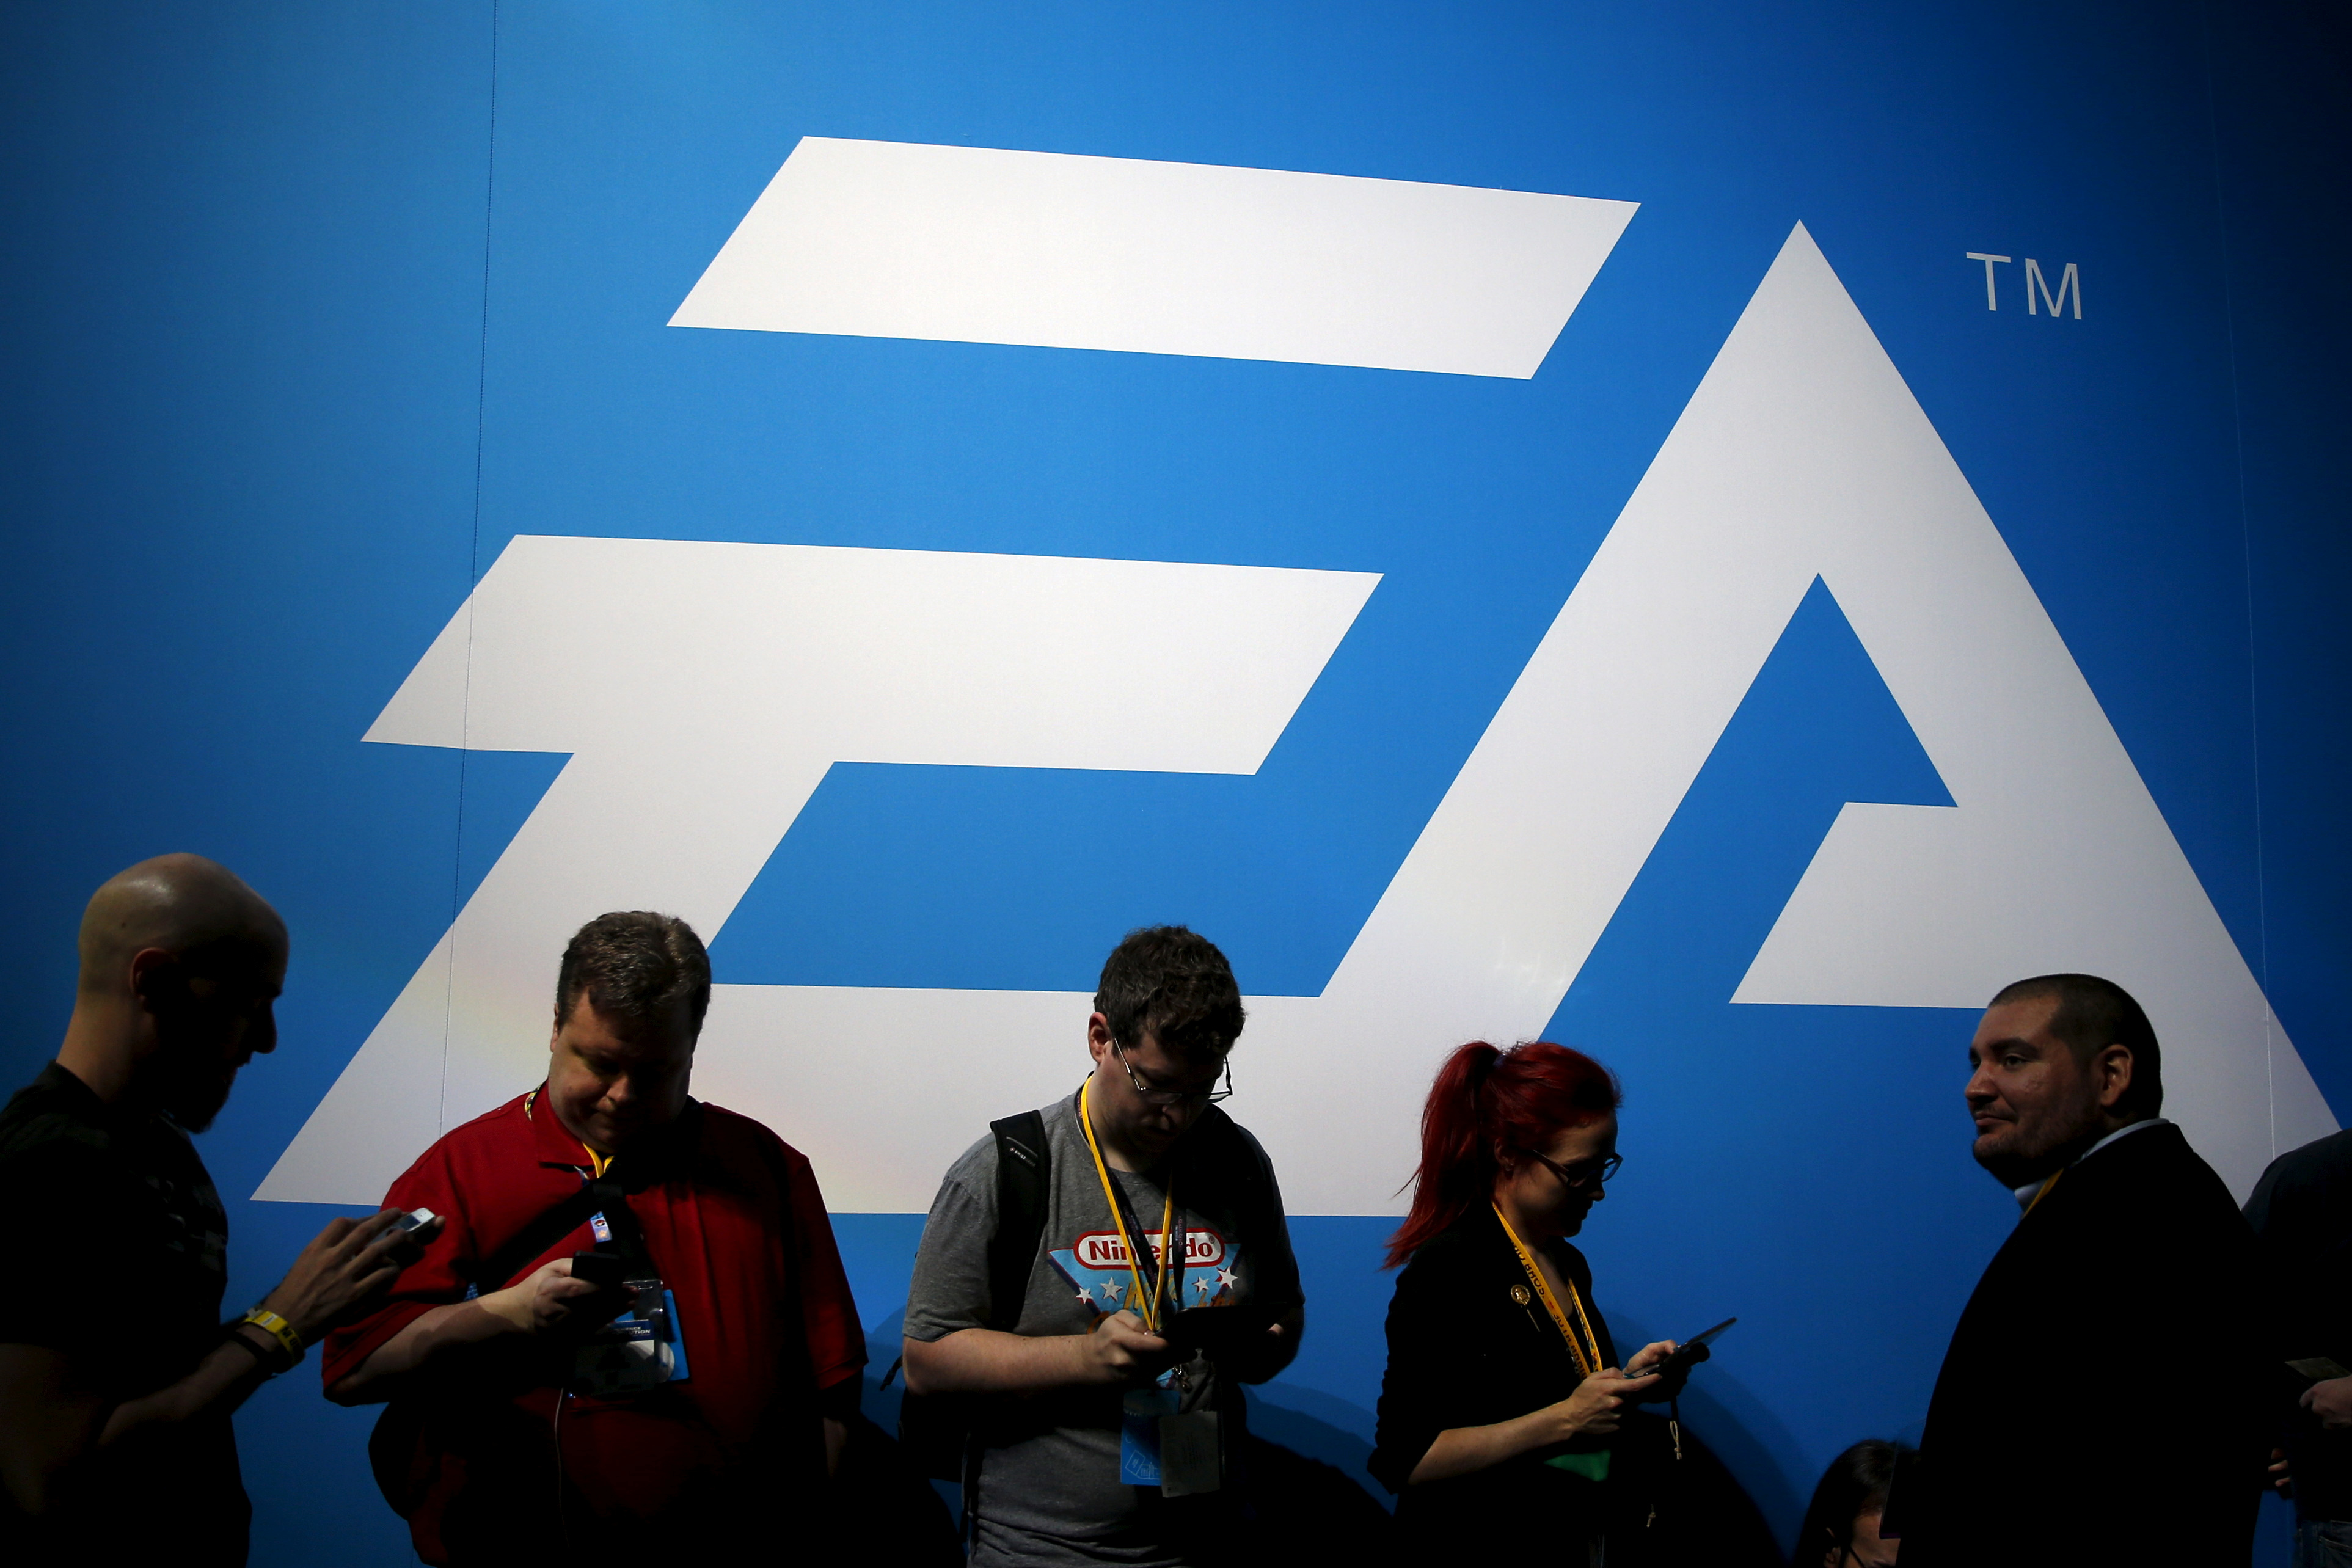 An Electronic Arts (EA) video game logo is seen at the Electronic Entertainment Expo, or E3, in Los Angeles, California, United States, June 17, 2015.  REUTERS/Lucy Nicholson/File Photo